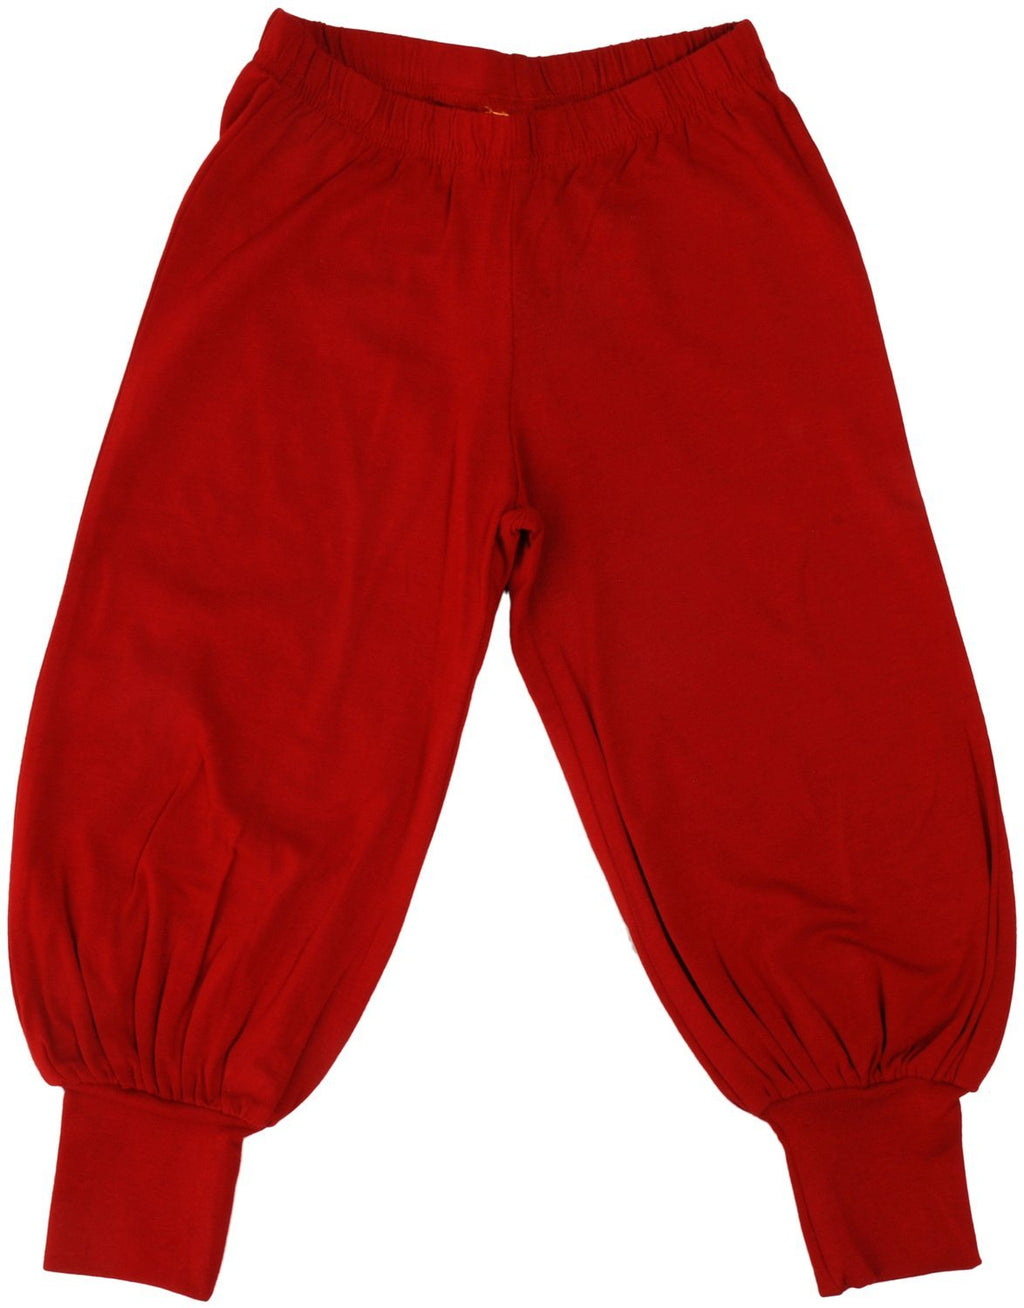 Red baggy pants